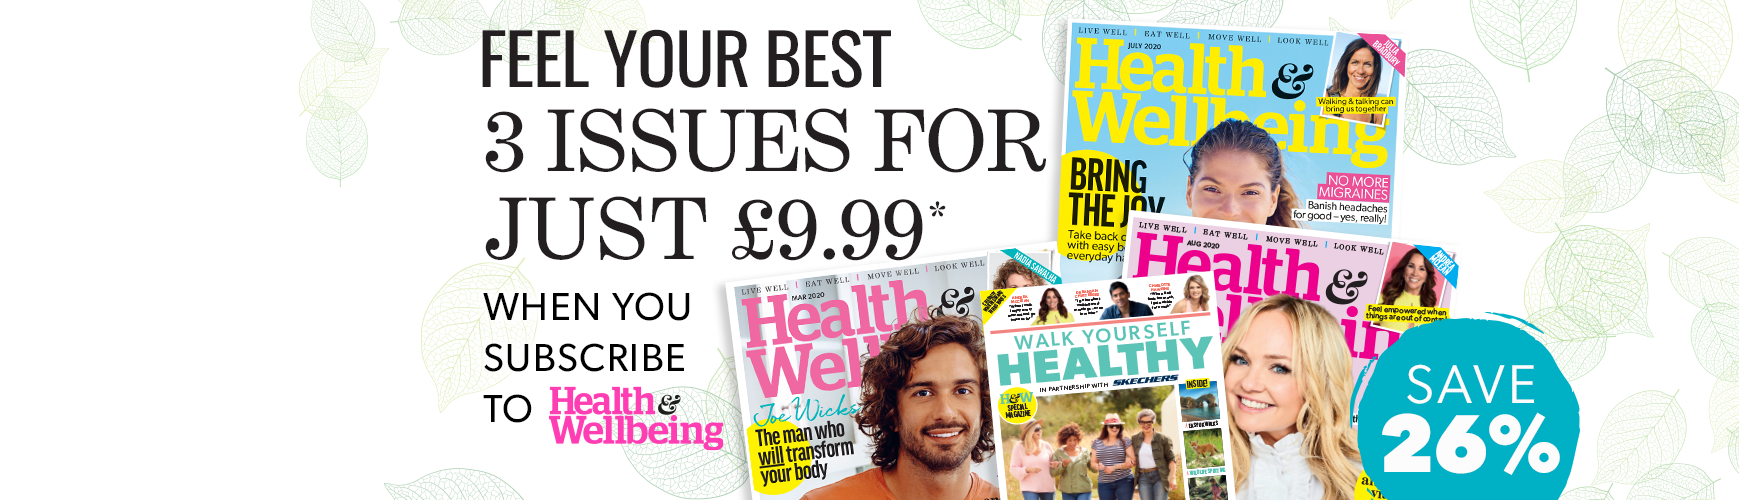 Feel your best | 3 issues for just £9.99 * when you subscribe to Health&Wellbeing